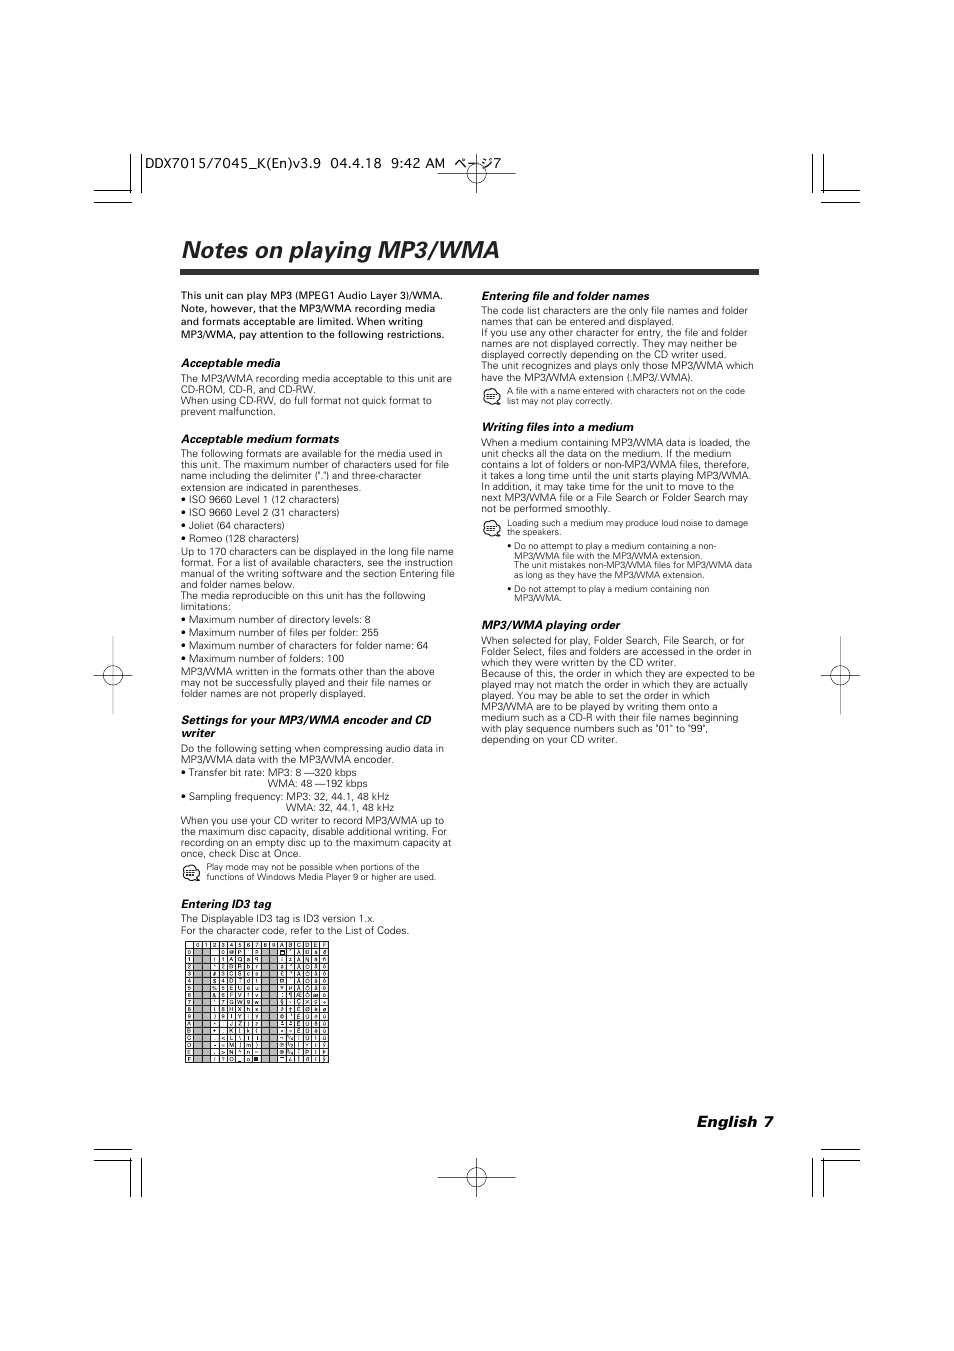 hight resolution of english 7 kenwood excelon ddx7015 user manual page 7 101